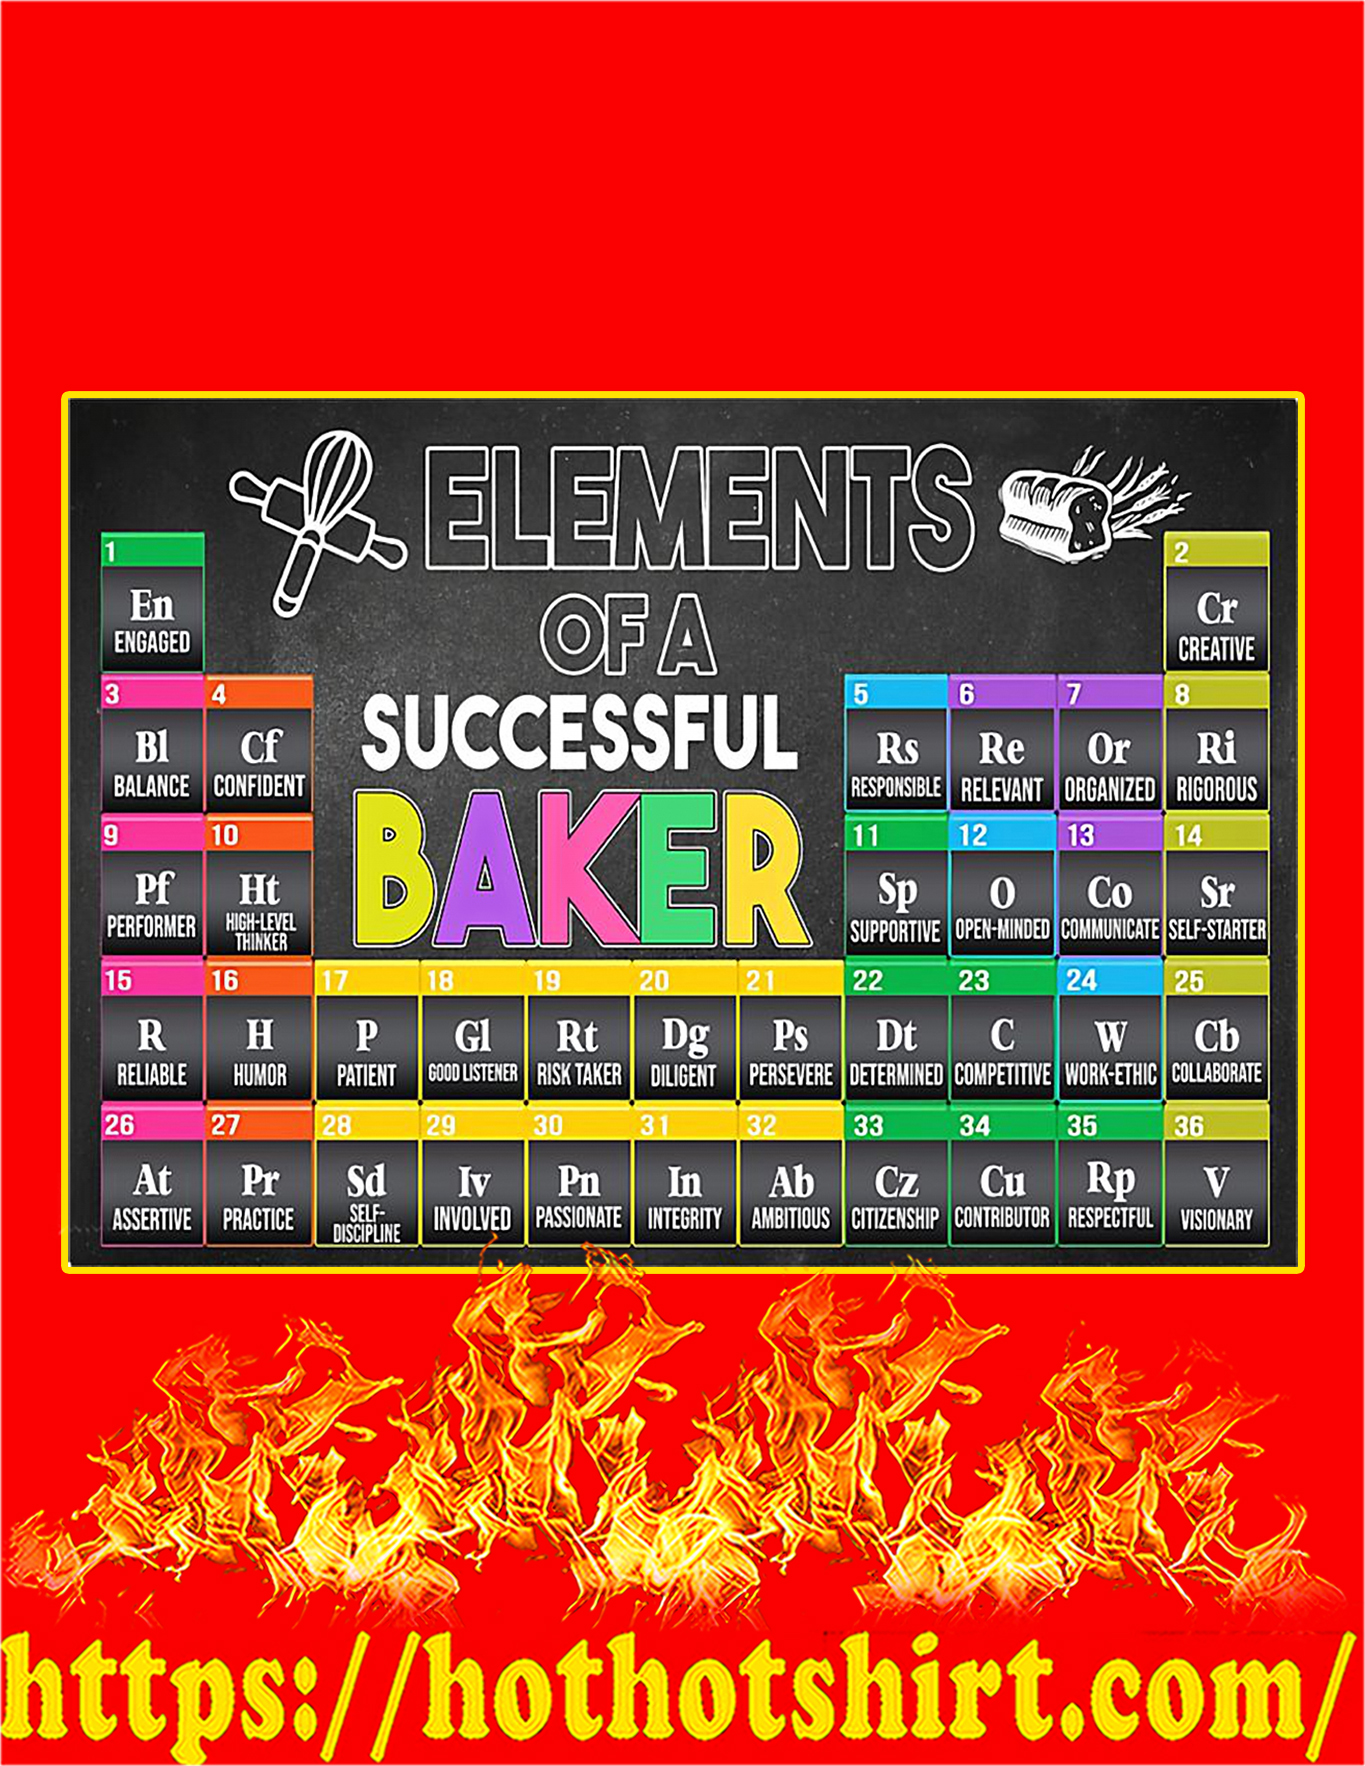 Elements of a successful baker poster - A2